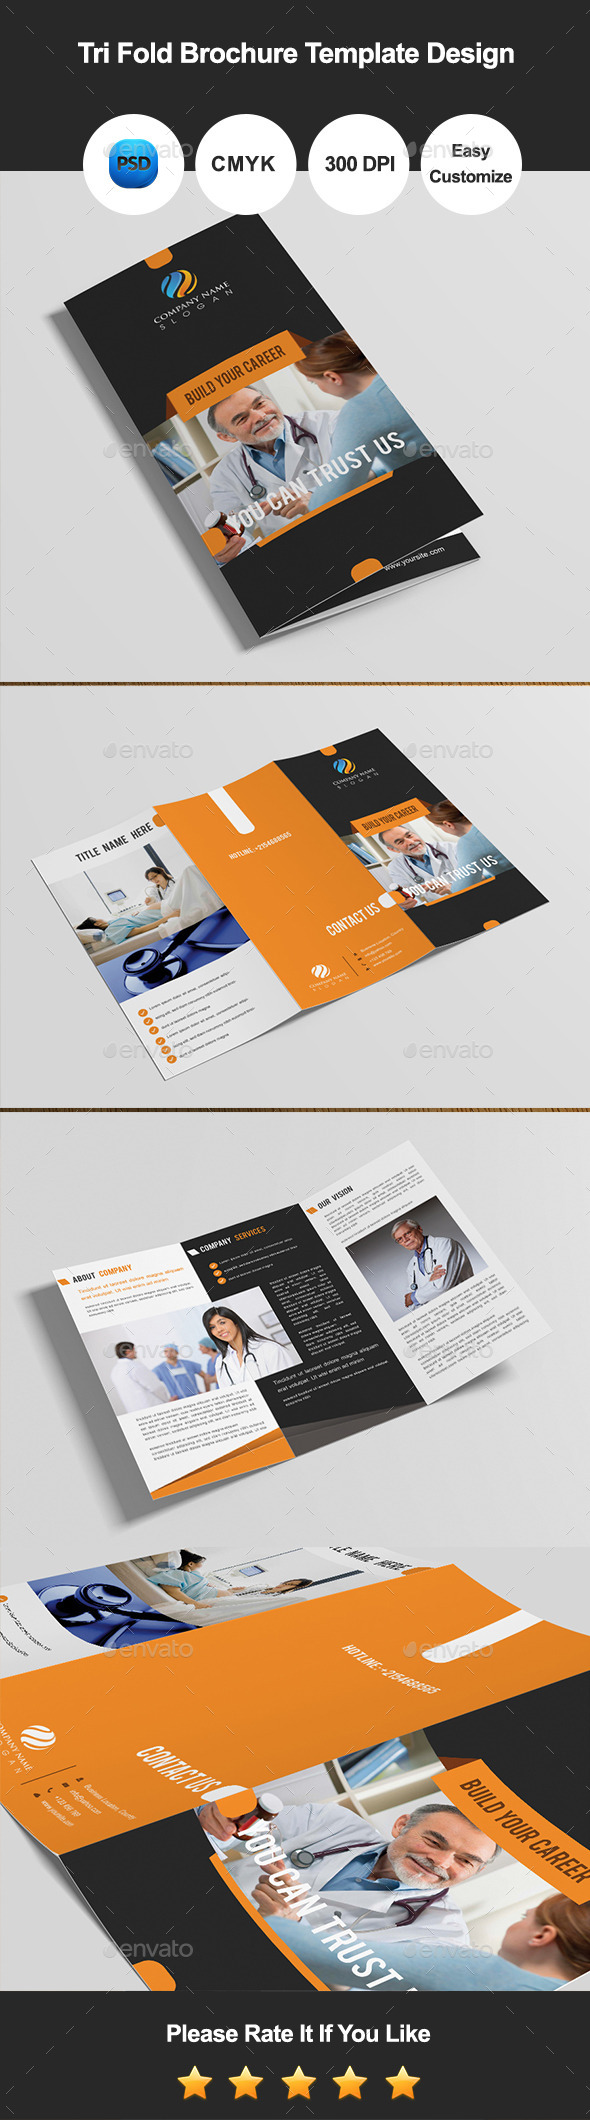 GraphicRiver Tri Fold Brochure Template Design 10684681